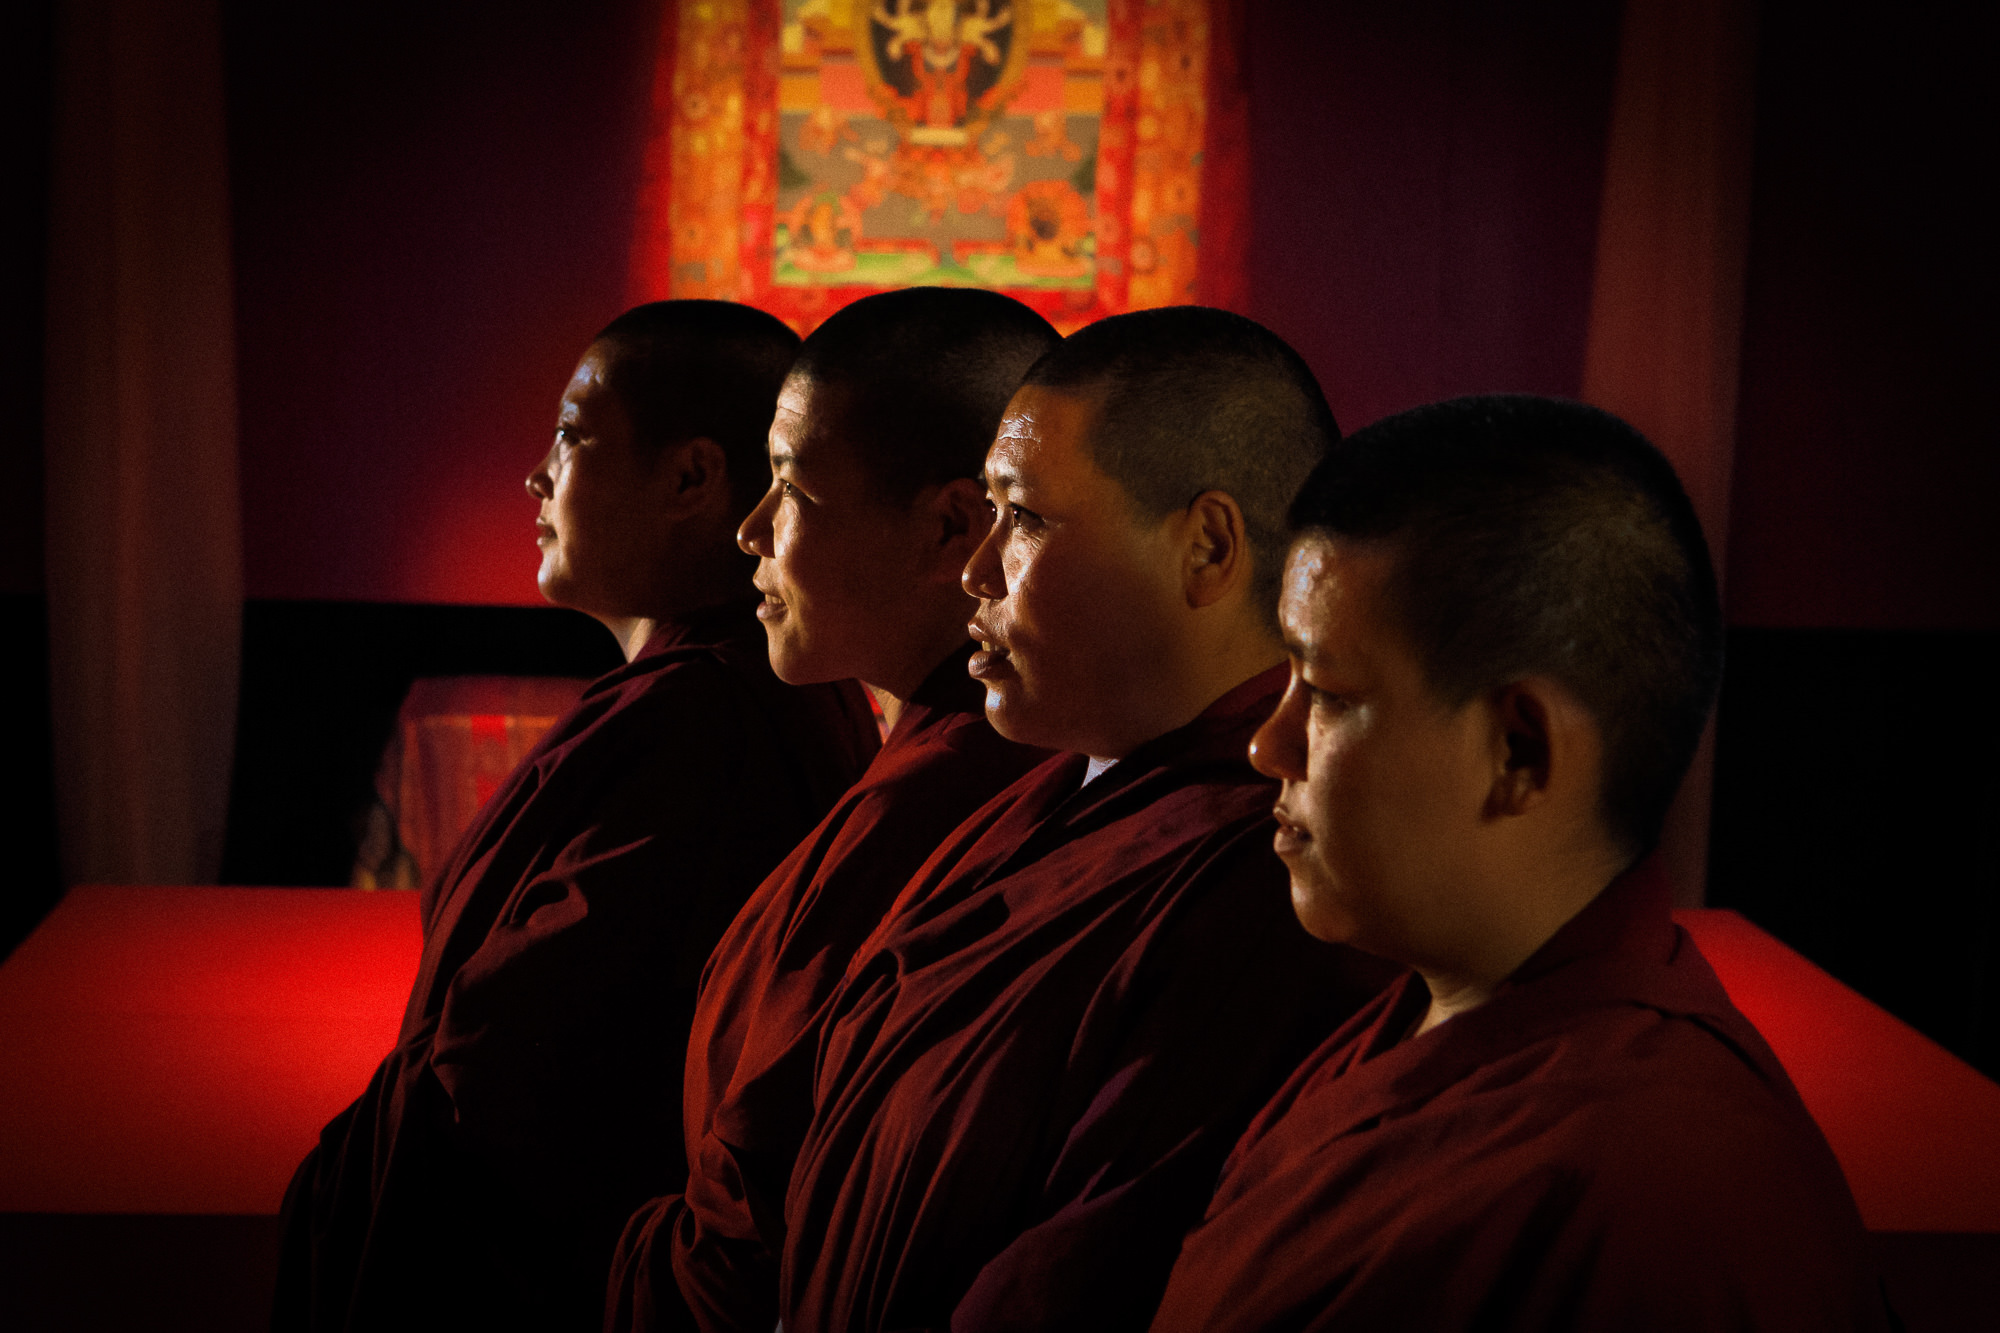 Six Buddhist nuns from the Keydong Thuk-che Choeling Nunnery in Kathmandu, Nepal, arrived in Hartford on August 16, 2012 in preparation for building a mandala, a sand painting used for prayer, contemplation, and healing, at Trinity College, in Hartford, Connecticut.